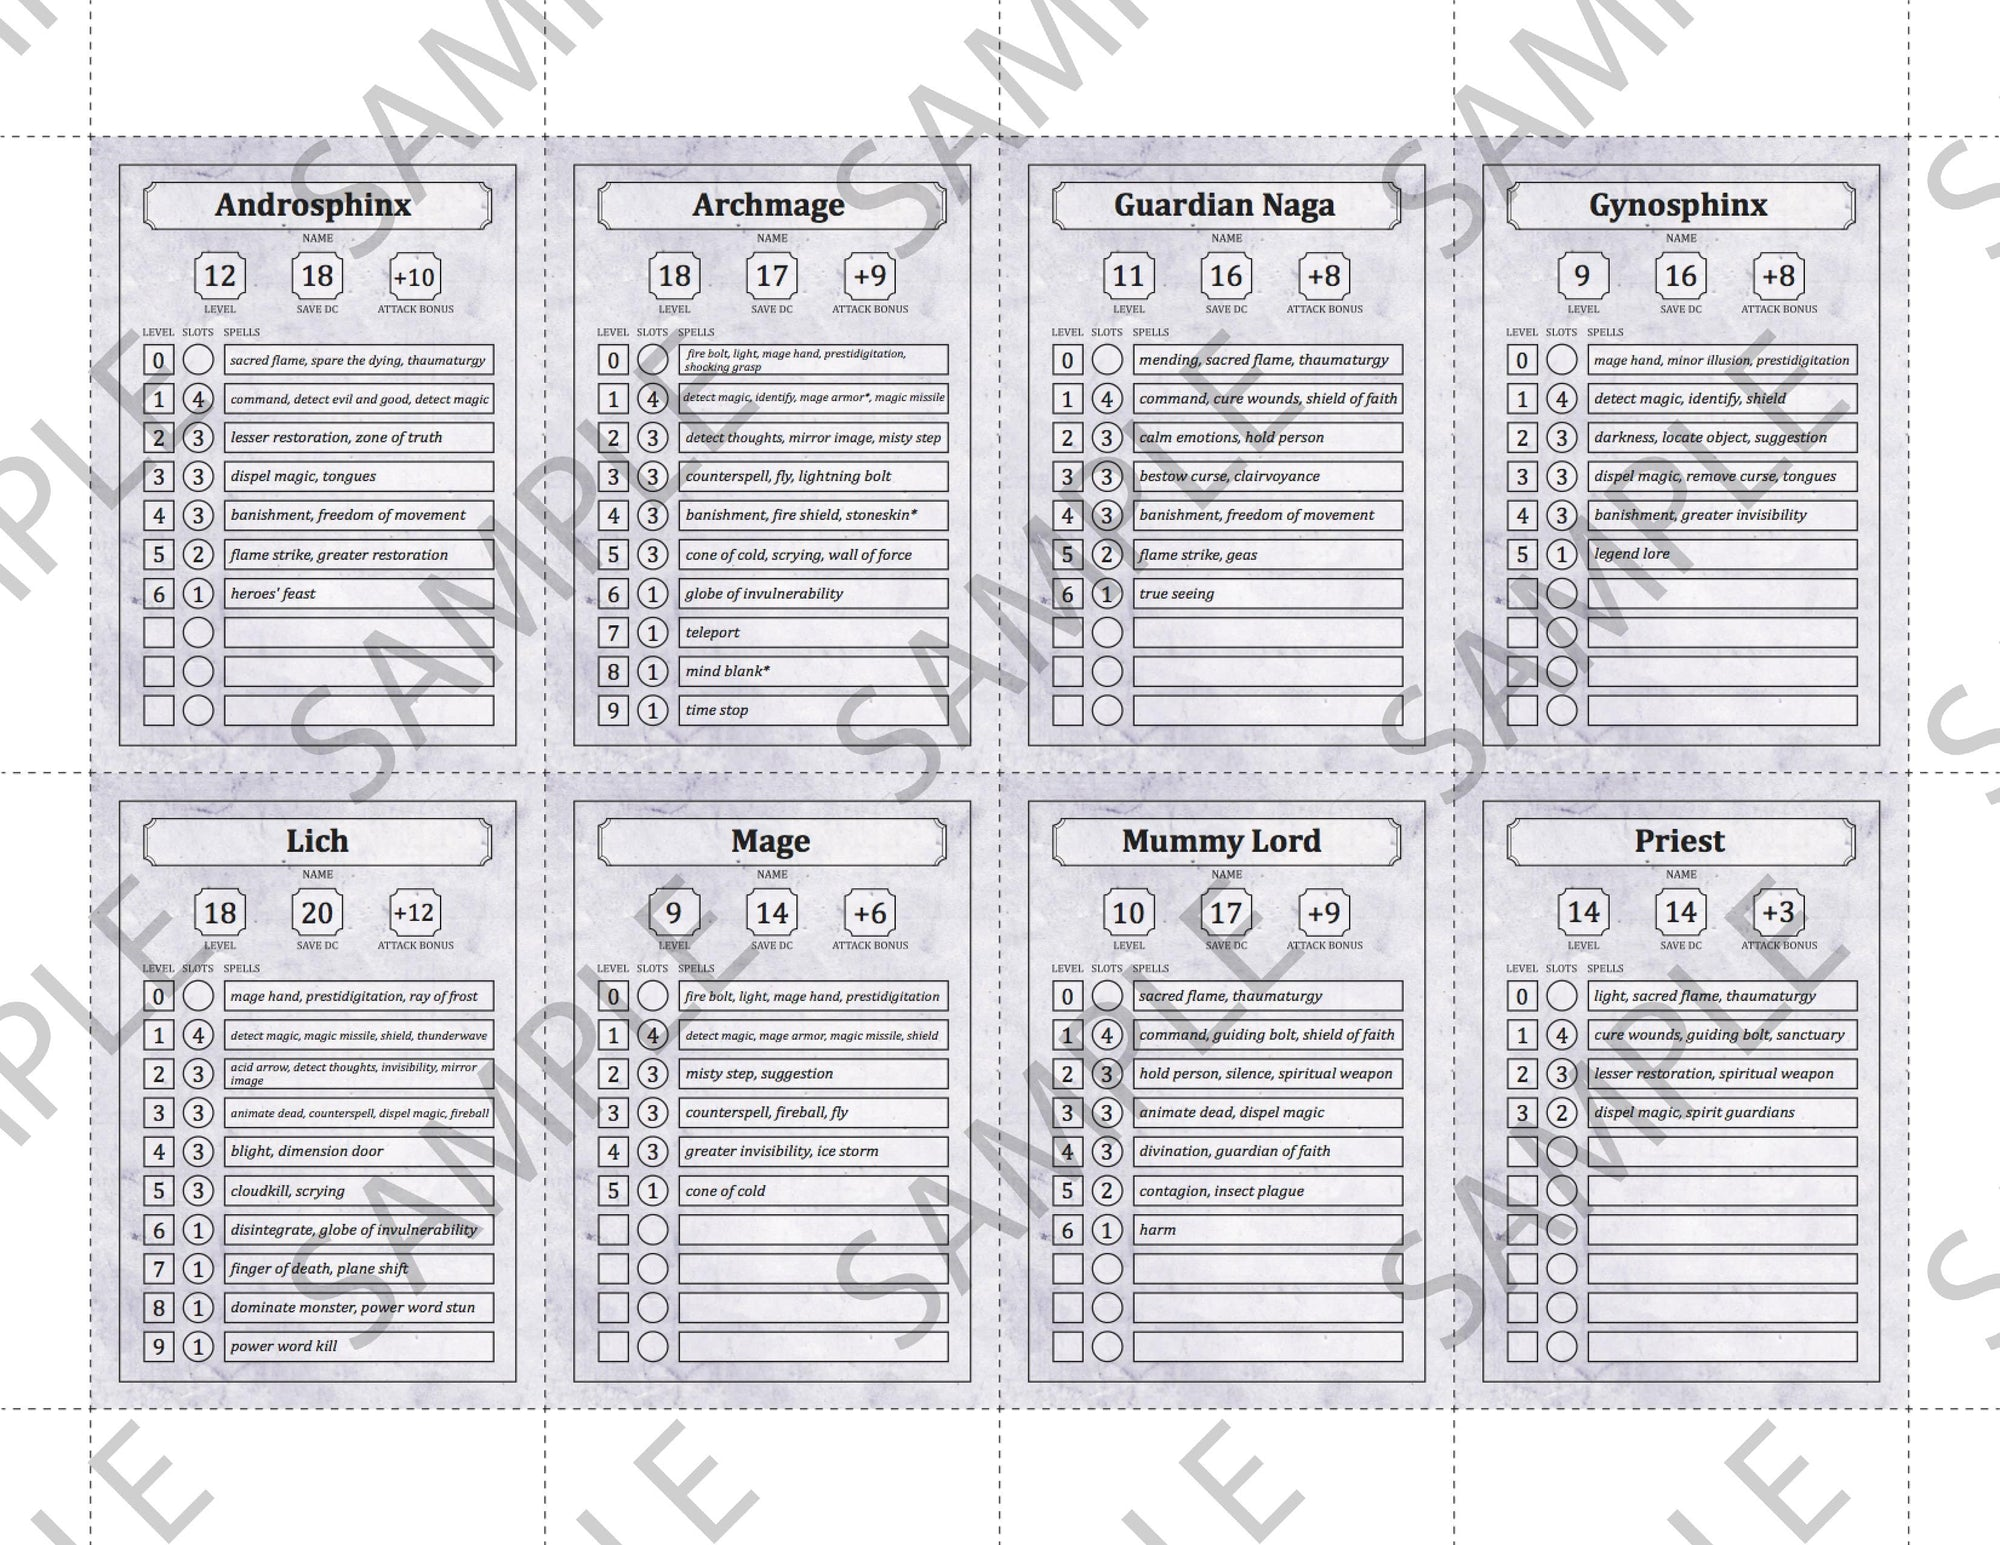 It is a picture of Printable Monster Cards 5e intended for formfillable monster pdf